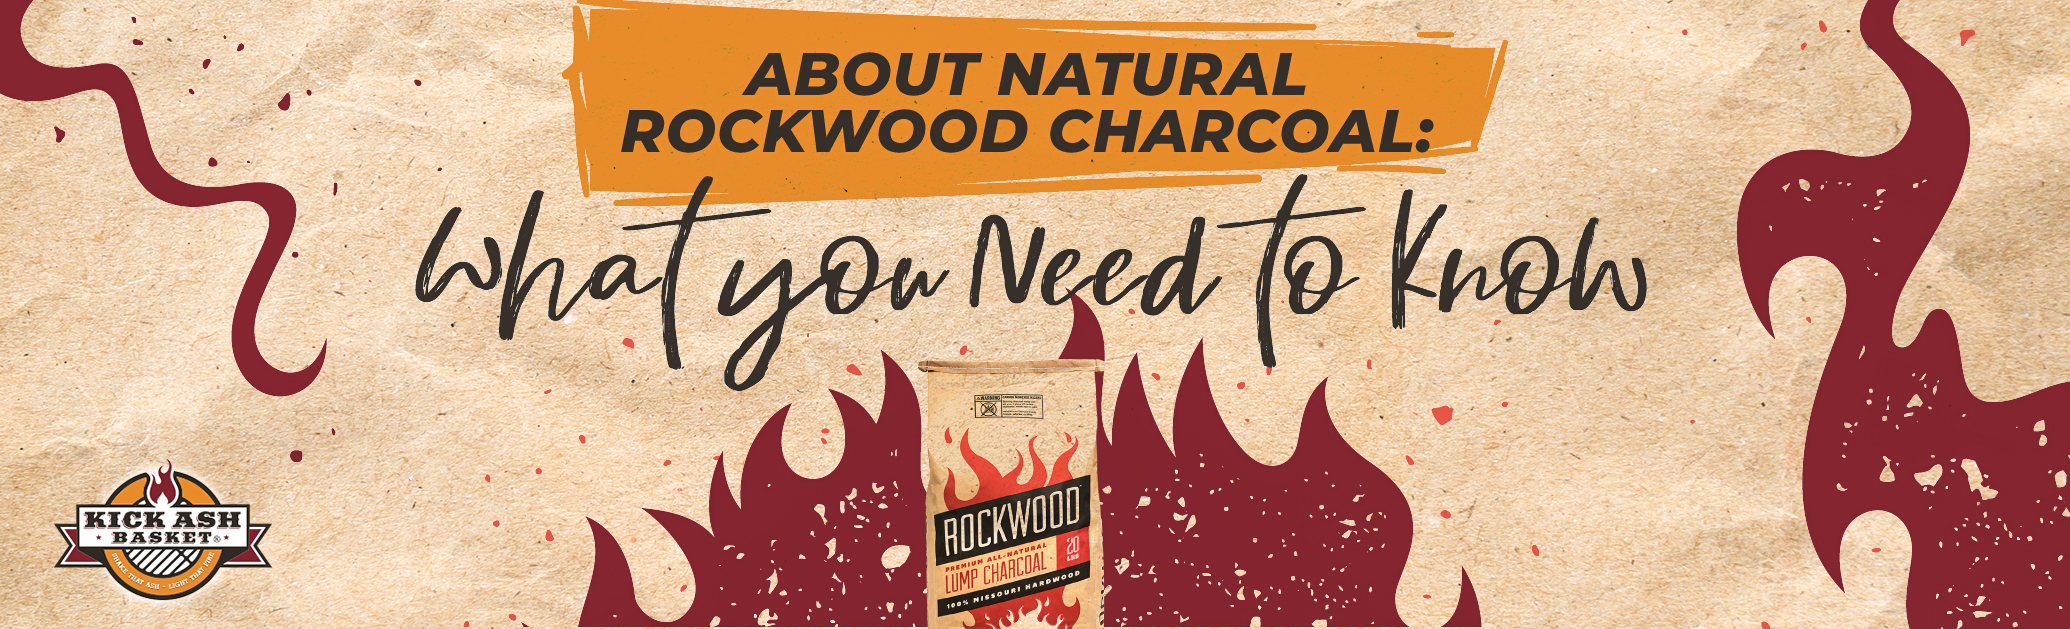 About Natural Rockwood Charcoal: What You Need to Know